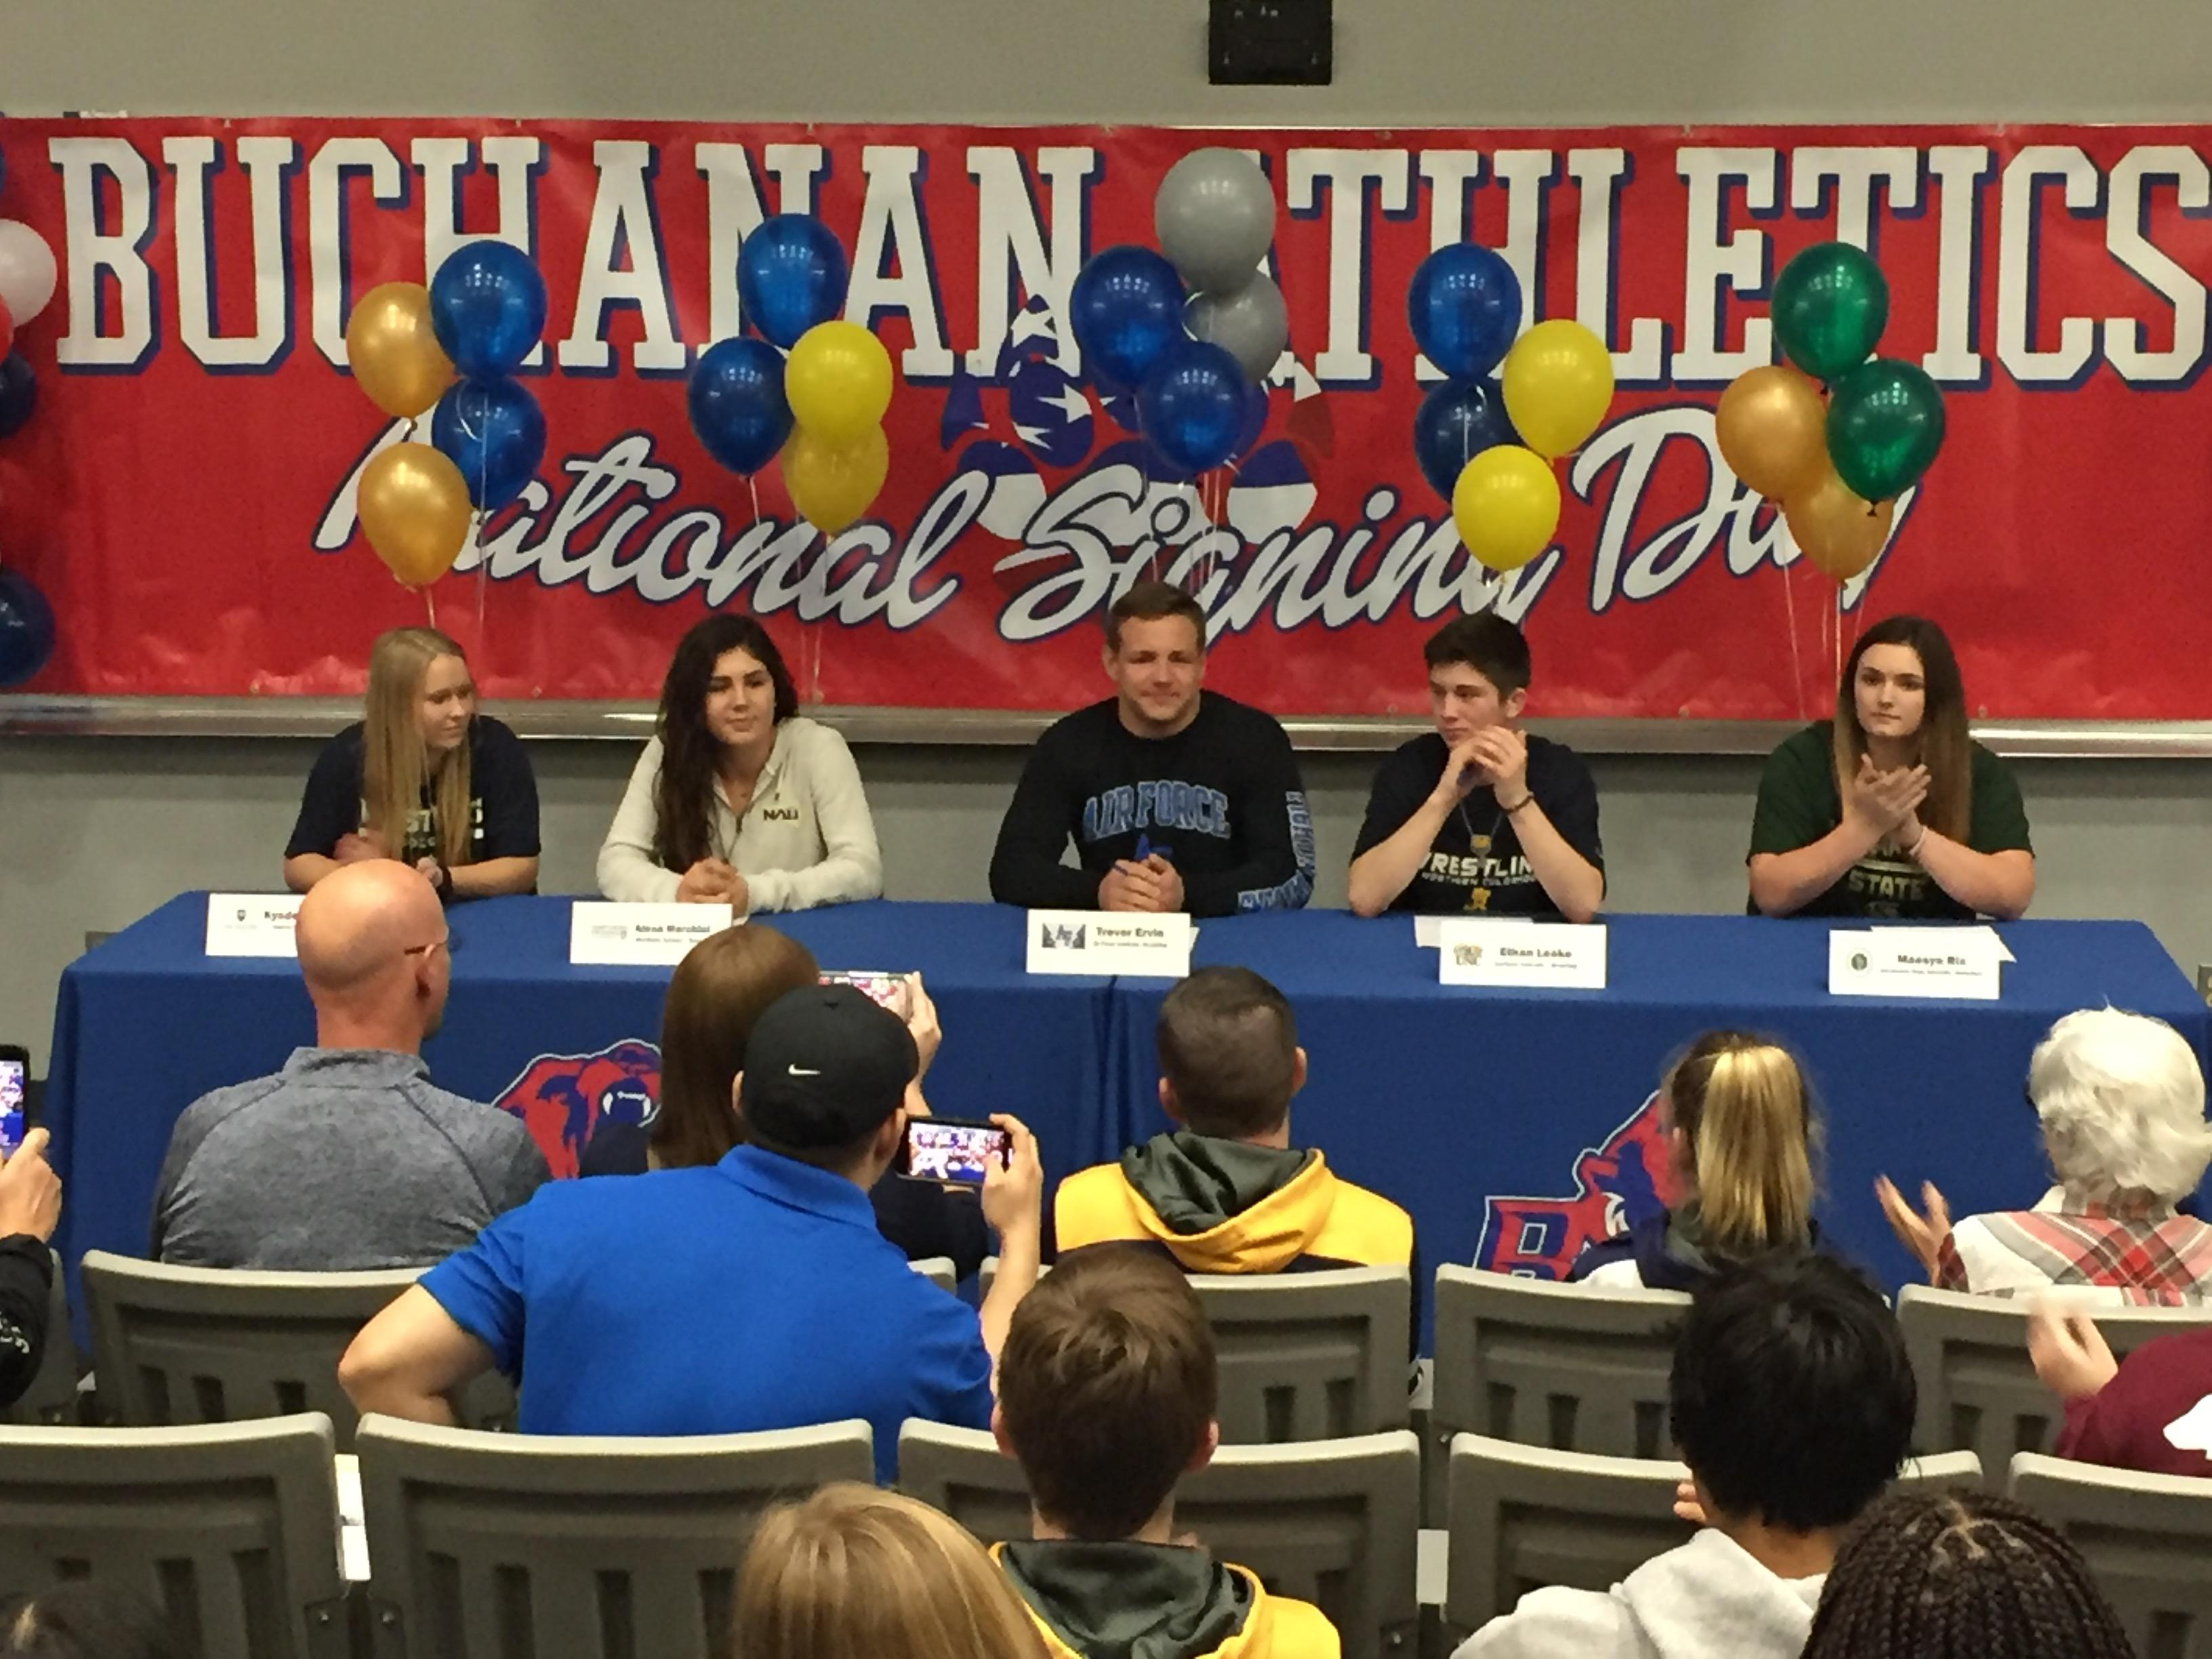 Buchanan student-athletes sign their letters of intent. From left to right: Kyndel Borman, soccer, Masters University;{&amp;nbsp;}Alexa Marchini, soccer, Northern Arizona; Trevor Ervin, wrestling, Air Force Academy; Ethan Leake, wrestling, Northern Colorado; Maesyn Rix, basketball, Sacramento State.<p></p>